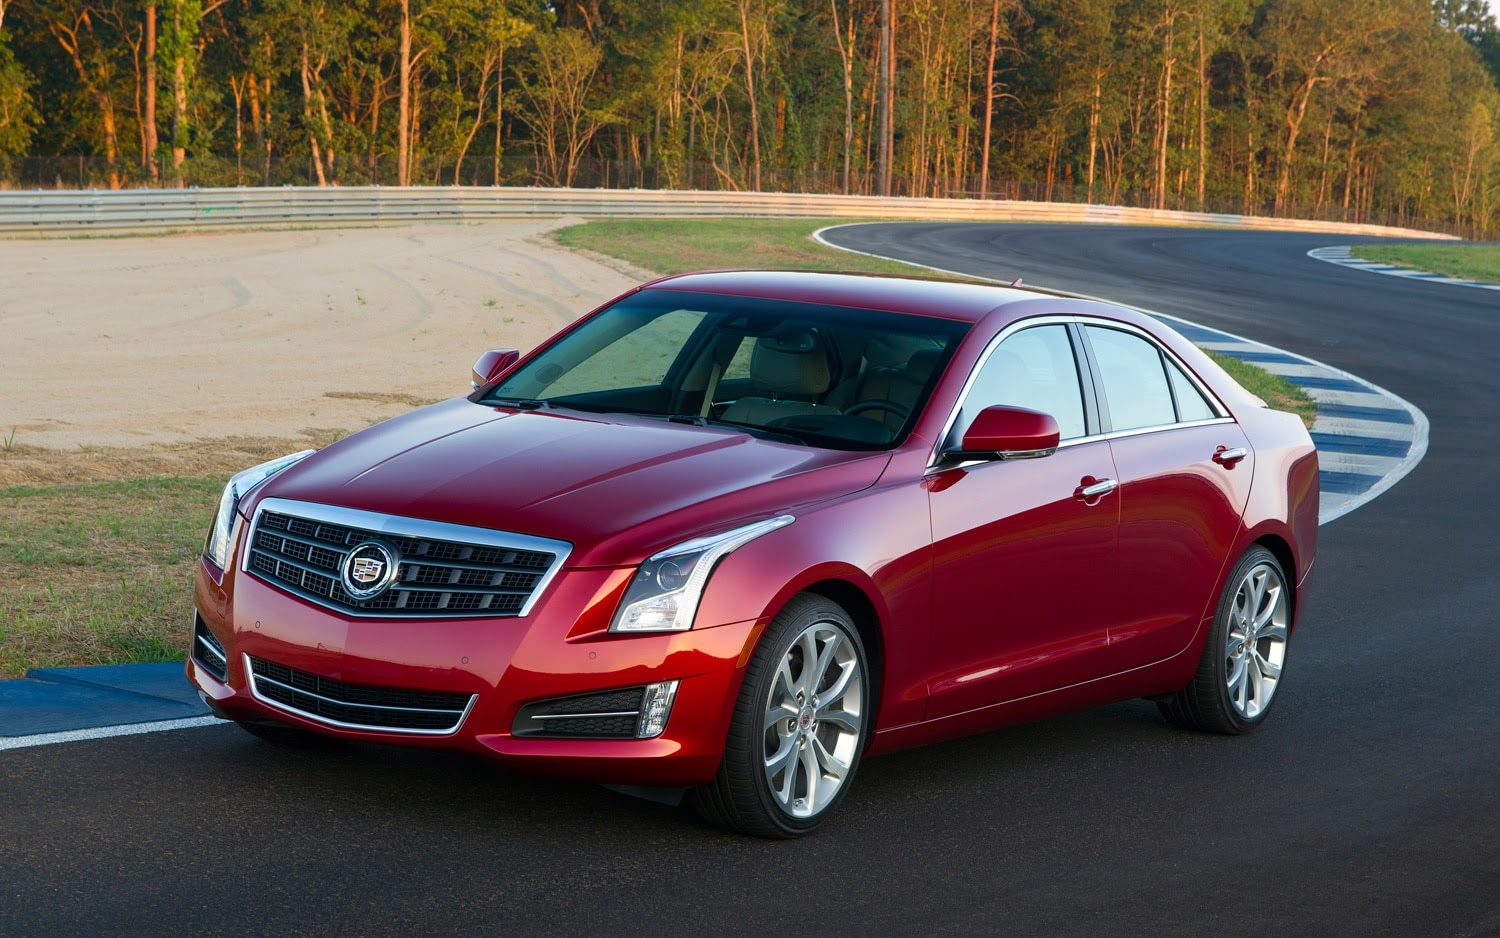 First Drive: 2013 Cadillac ATS - Automobile Magazine